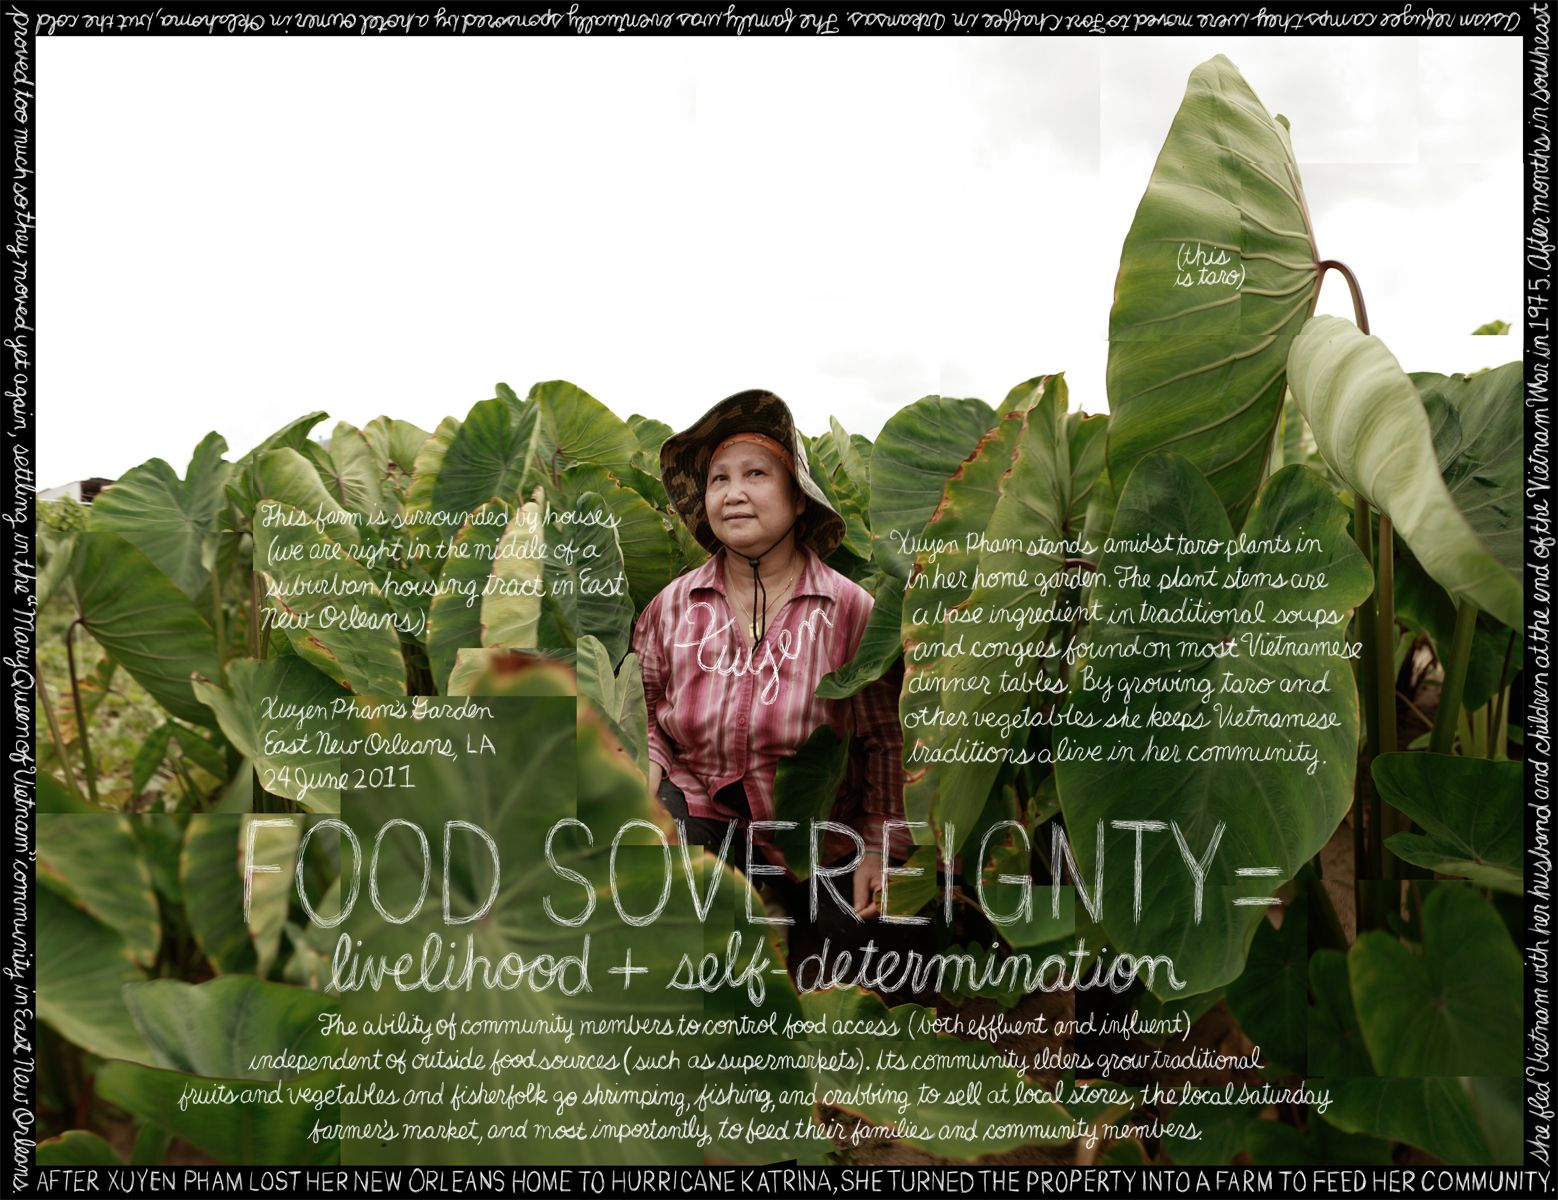 the lexicon of food sovereignty